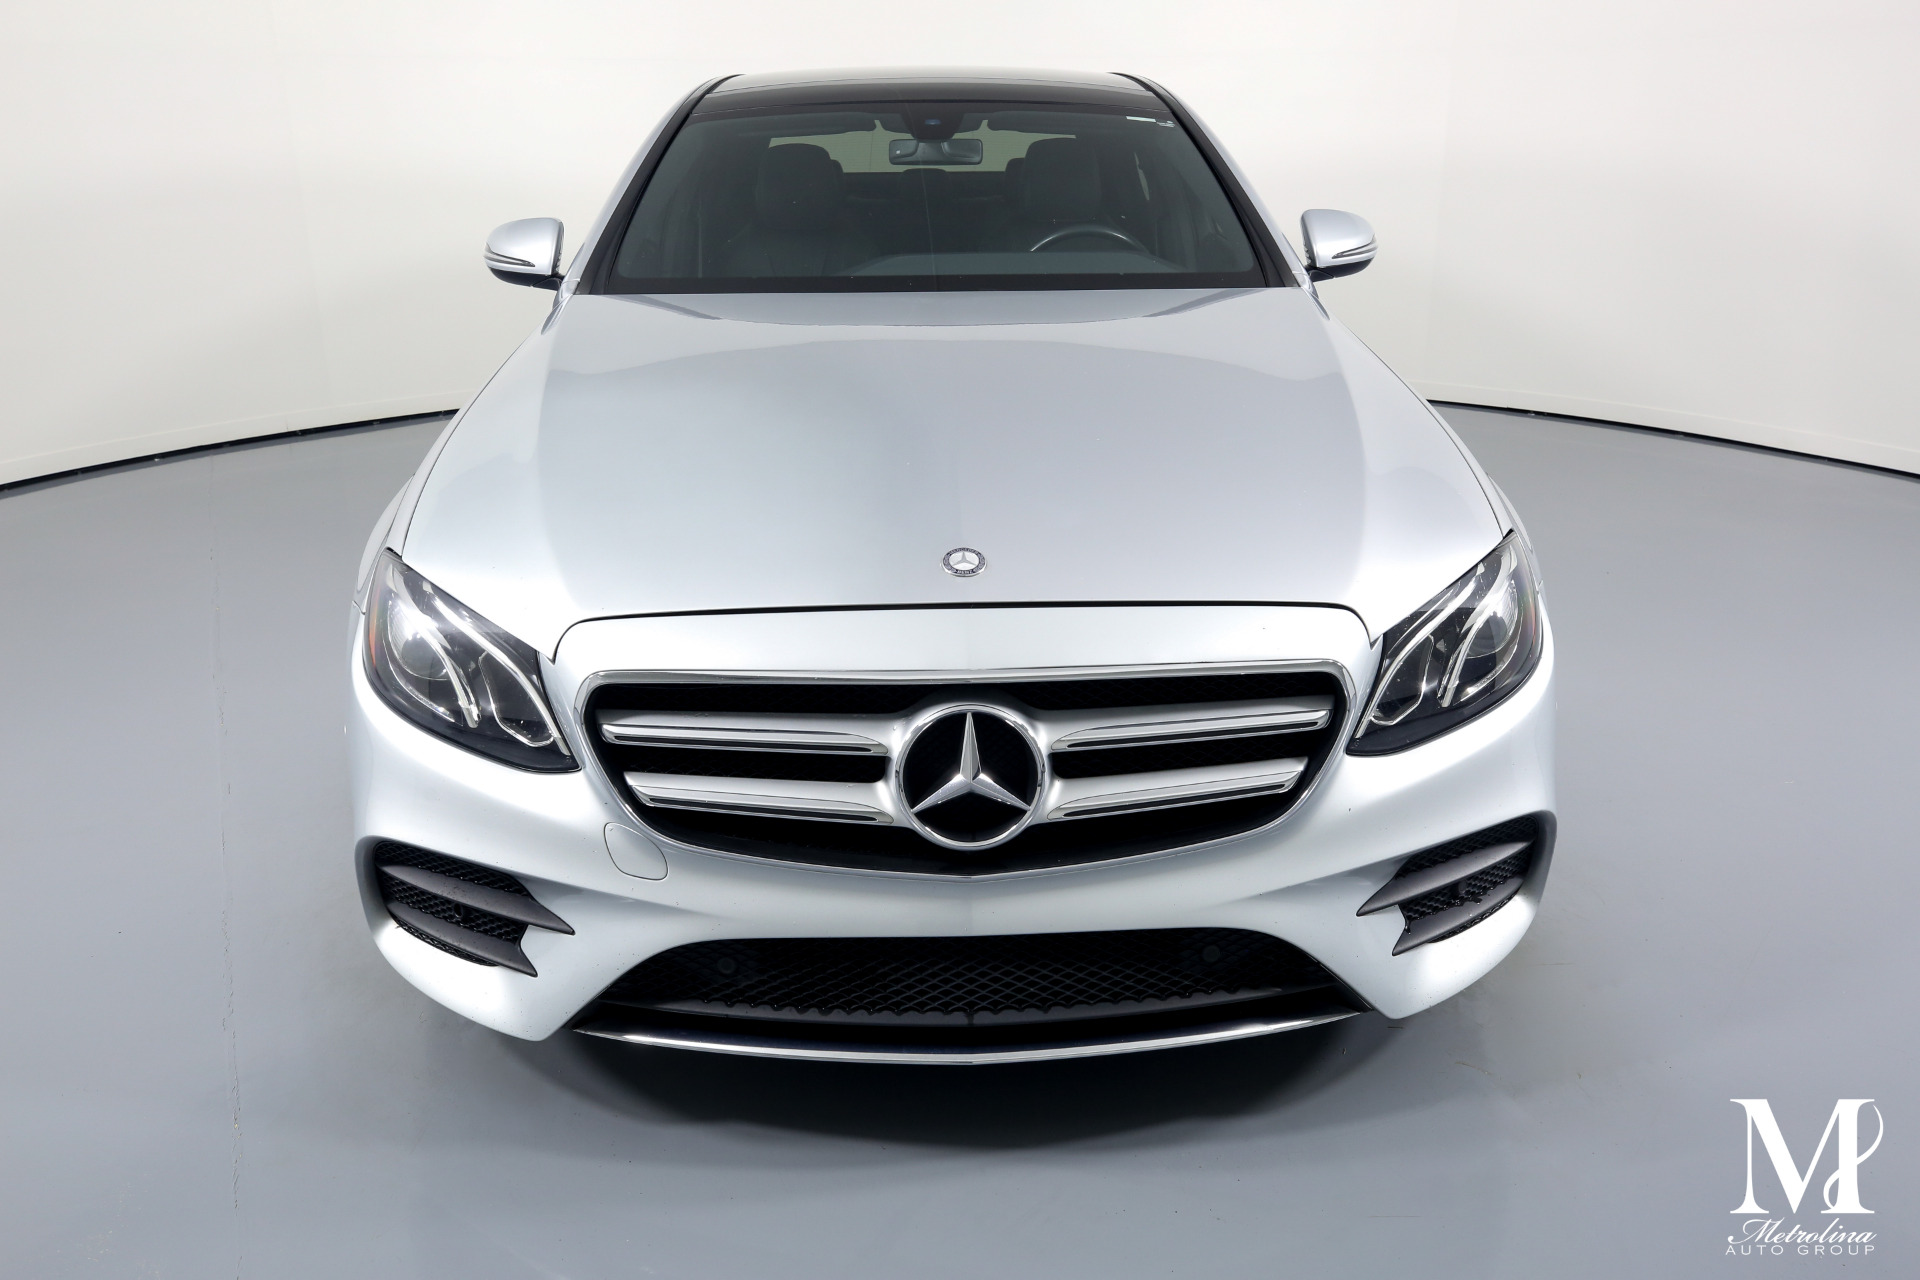 Used 2017 Mercedes-Benz E-Class E 300 4MATIC for sale $31,996 at Metrolina Auto Group in Charlotte NC 28217 - 3